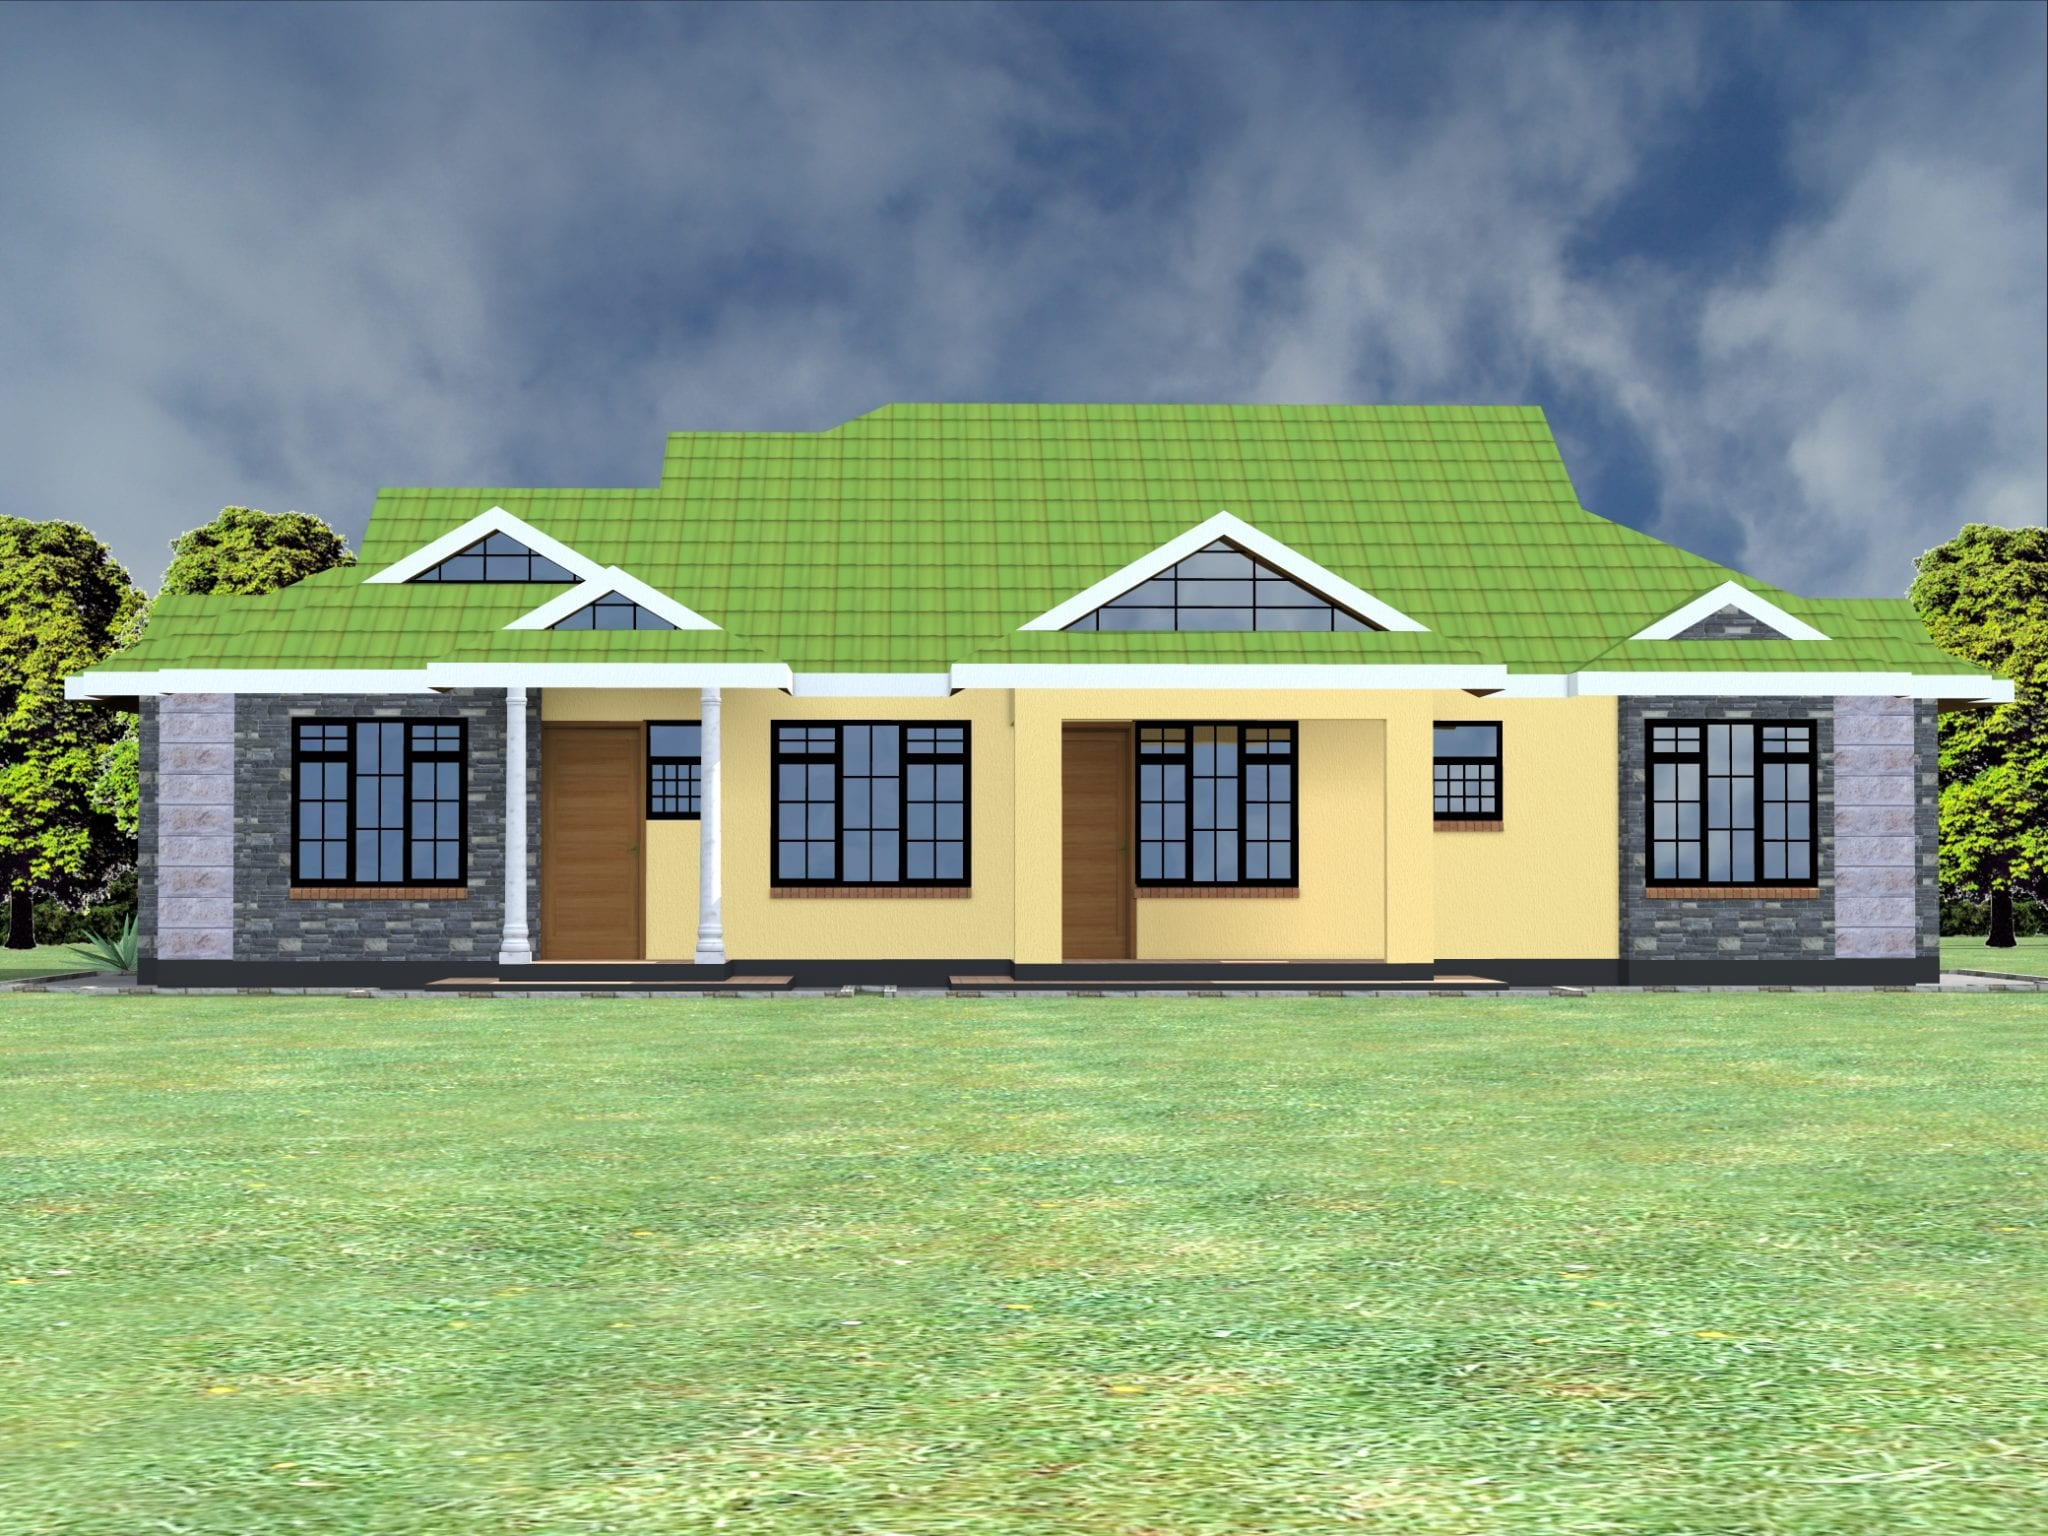 1112 N0.4 - View Modern 3 Bedroom Bungalow House Plans In Kenya Pictures